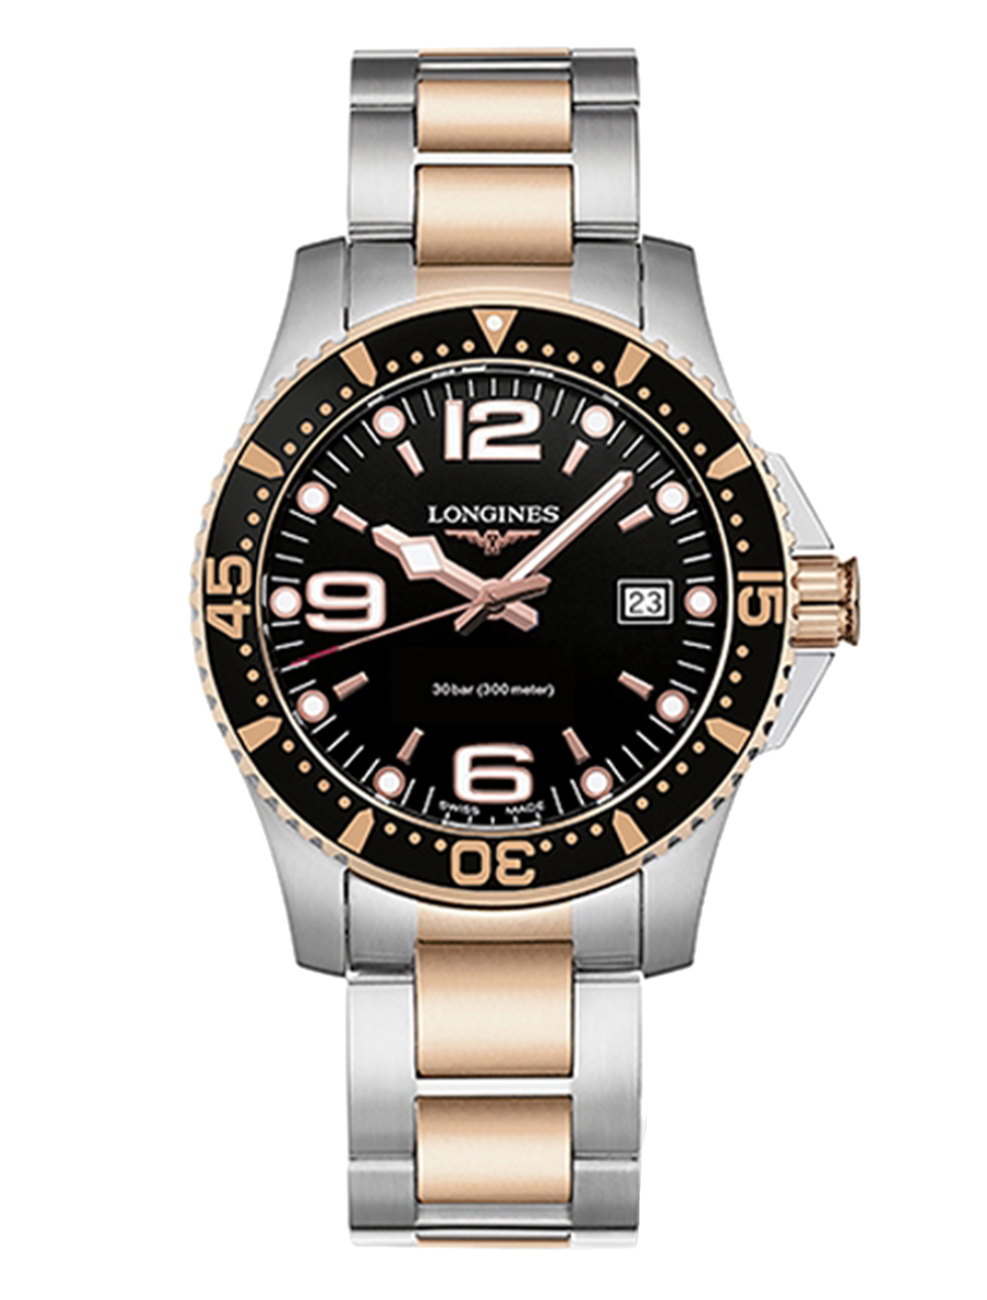 Sale watches longines hydroconquest 43mm longines price